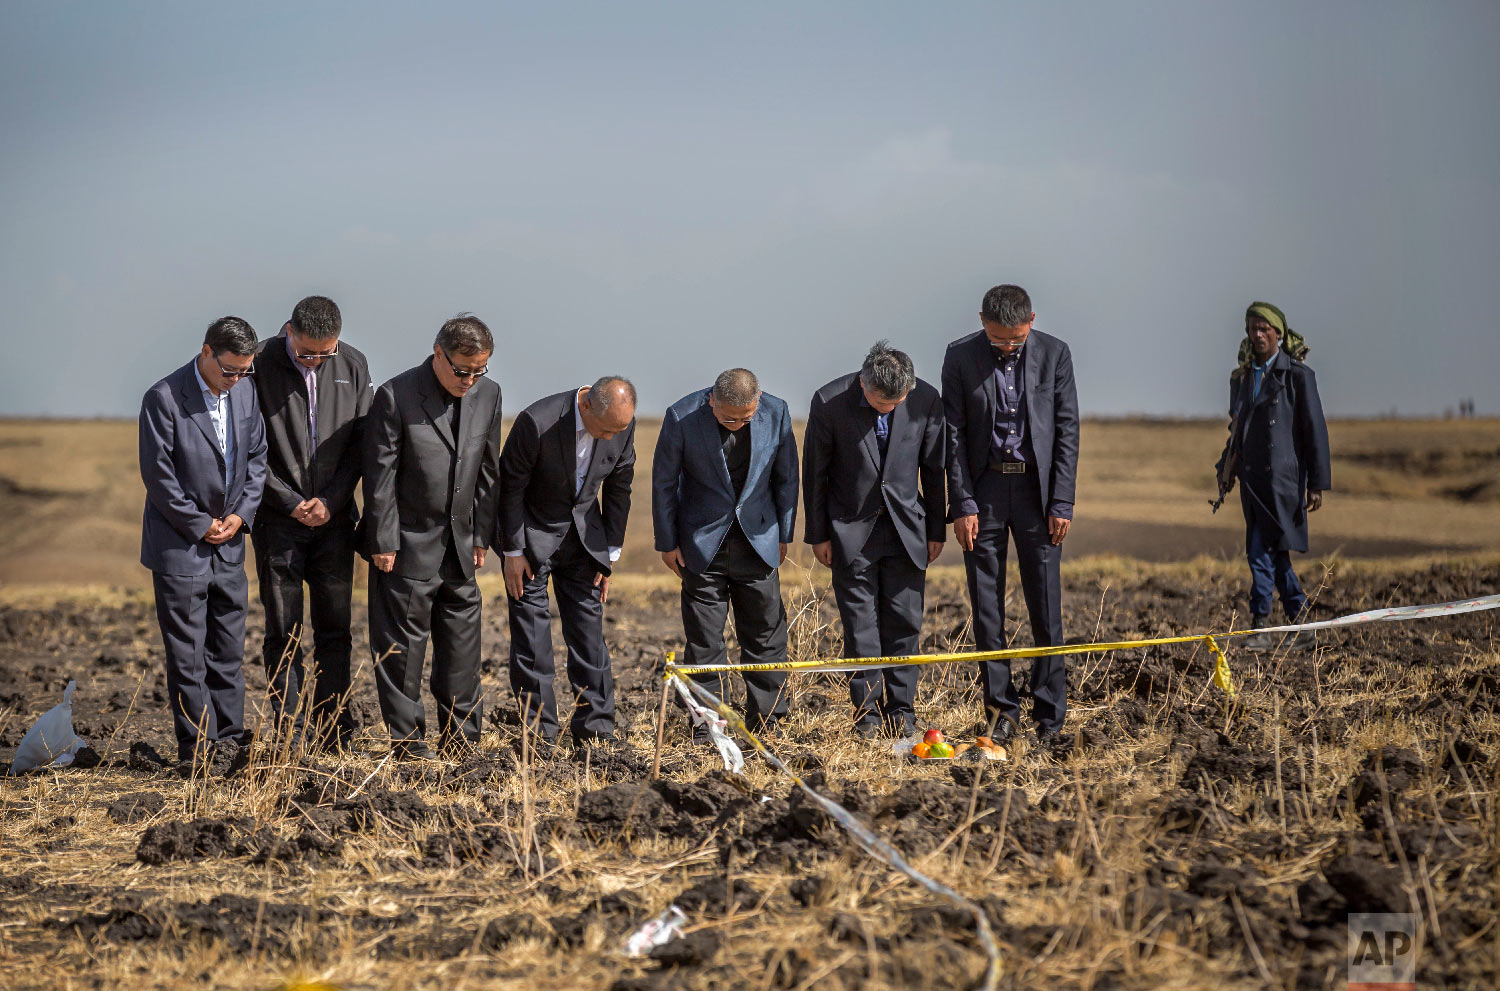 Officials from the Aviation Industry Corporation of China (AVIC) pray next to an offering of fruit, bread rolls, and a plastic container of Ethiopian Injera, a fermented sourdough flatbread, placed next to incense sticks, at the scene where the Ethiopian Airlines Boeing 737 Max 8 crashed shortly after takeoff on Sunday near Bishoftu, Ethiopia, March 12, 2019. (AP Photo/Mulugeta Ayene)